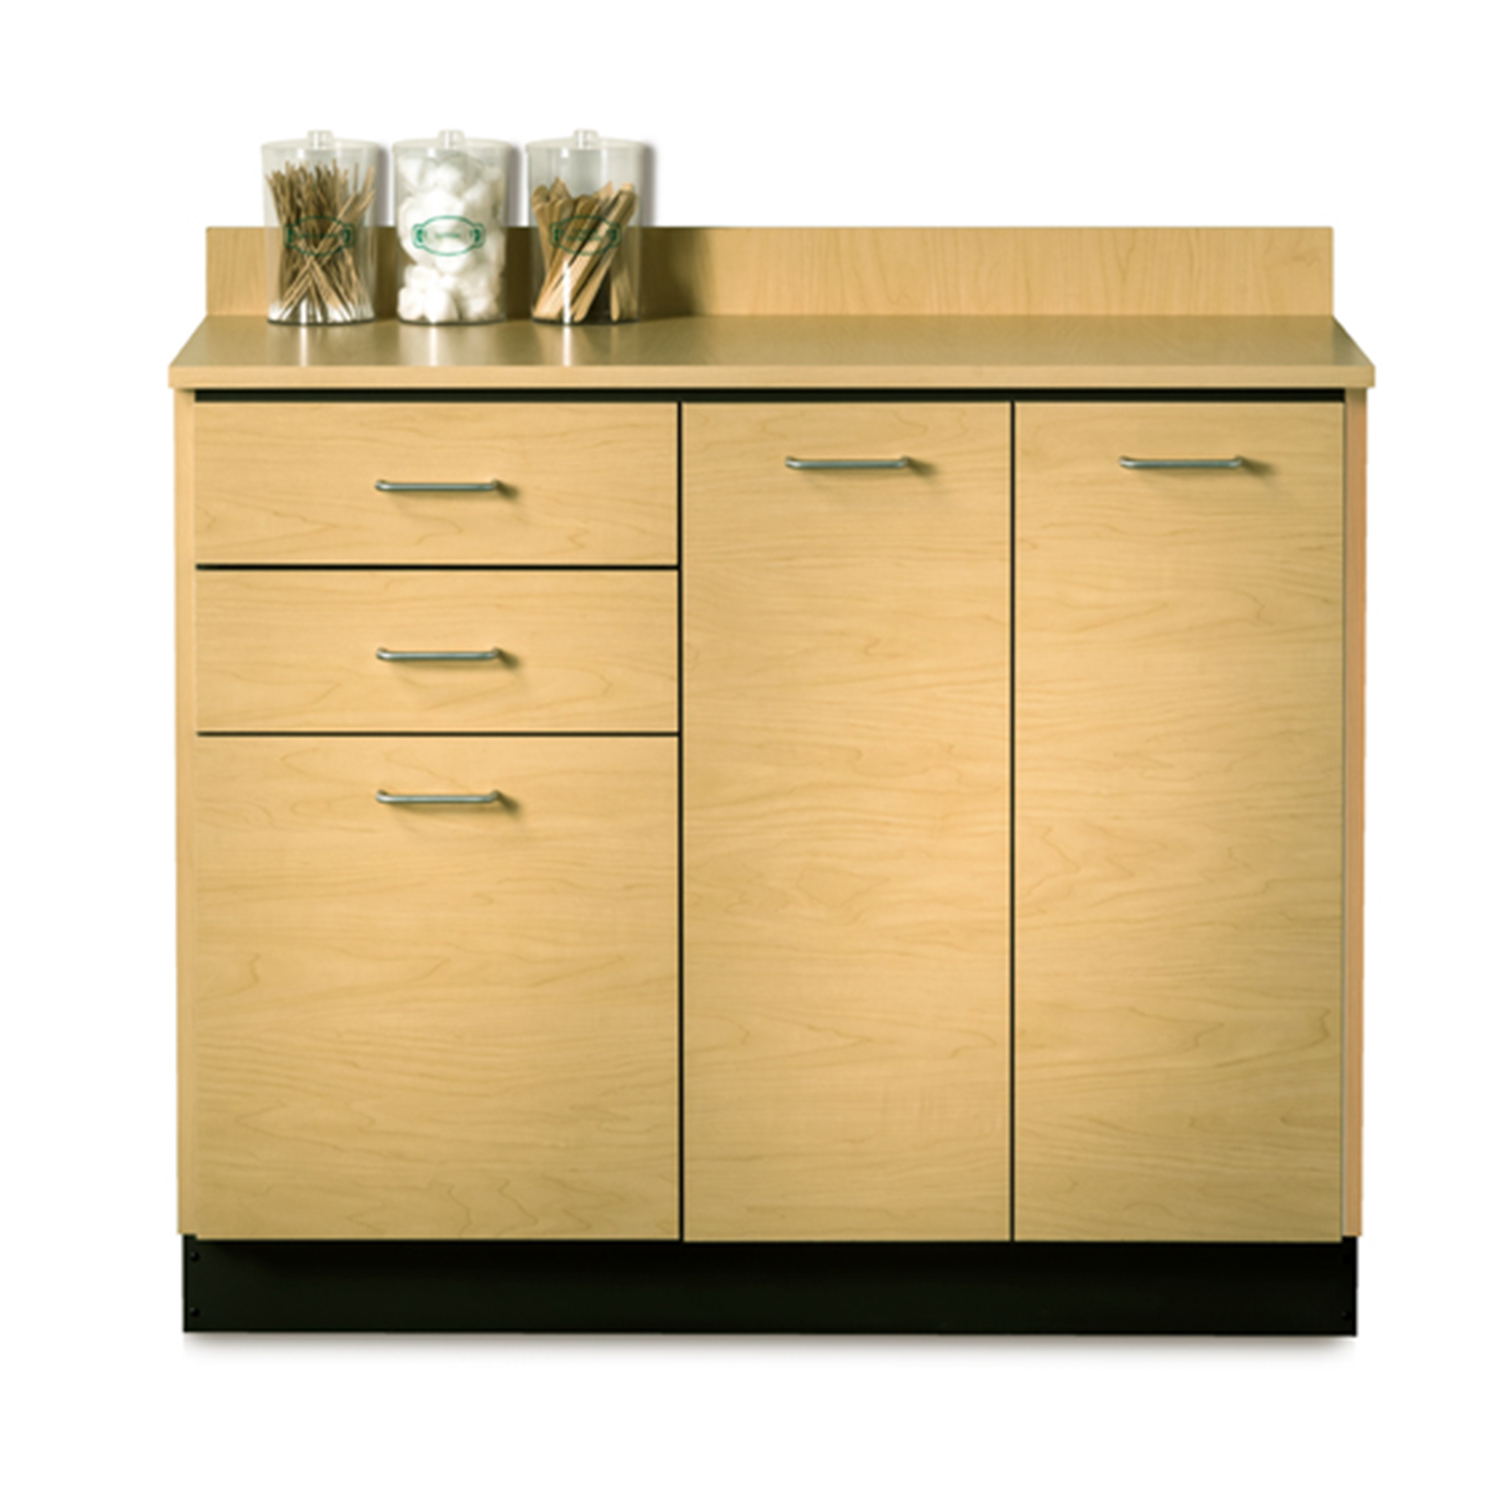 Clinton Base Cabinet with 3 Doors and 2 Drawers